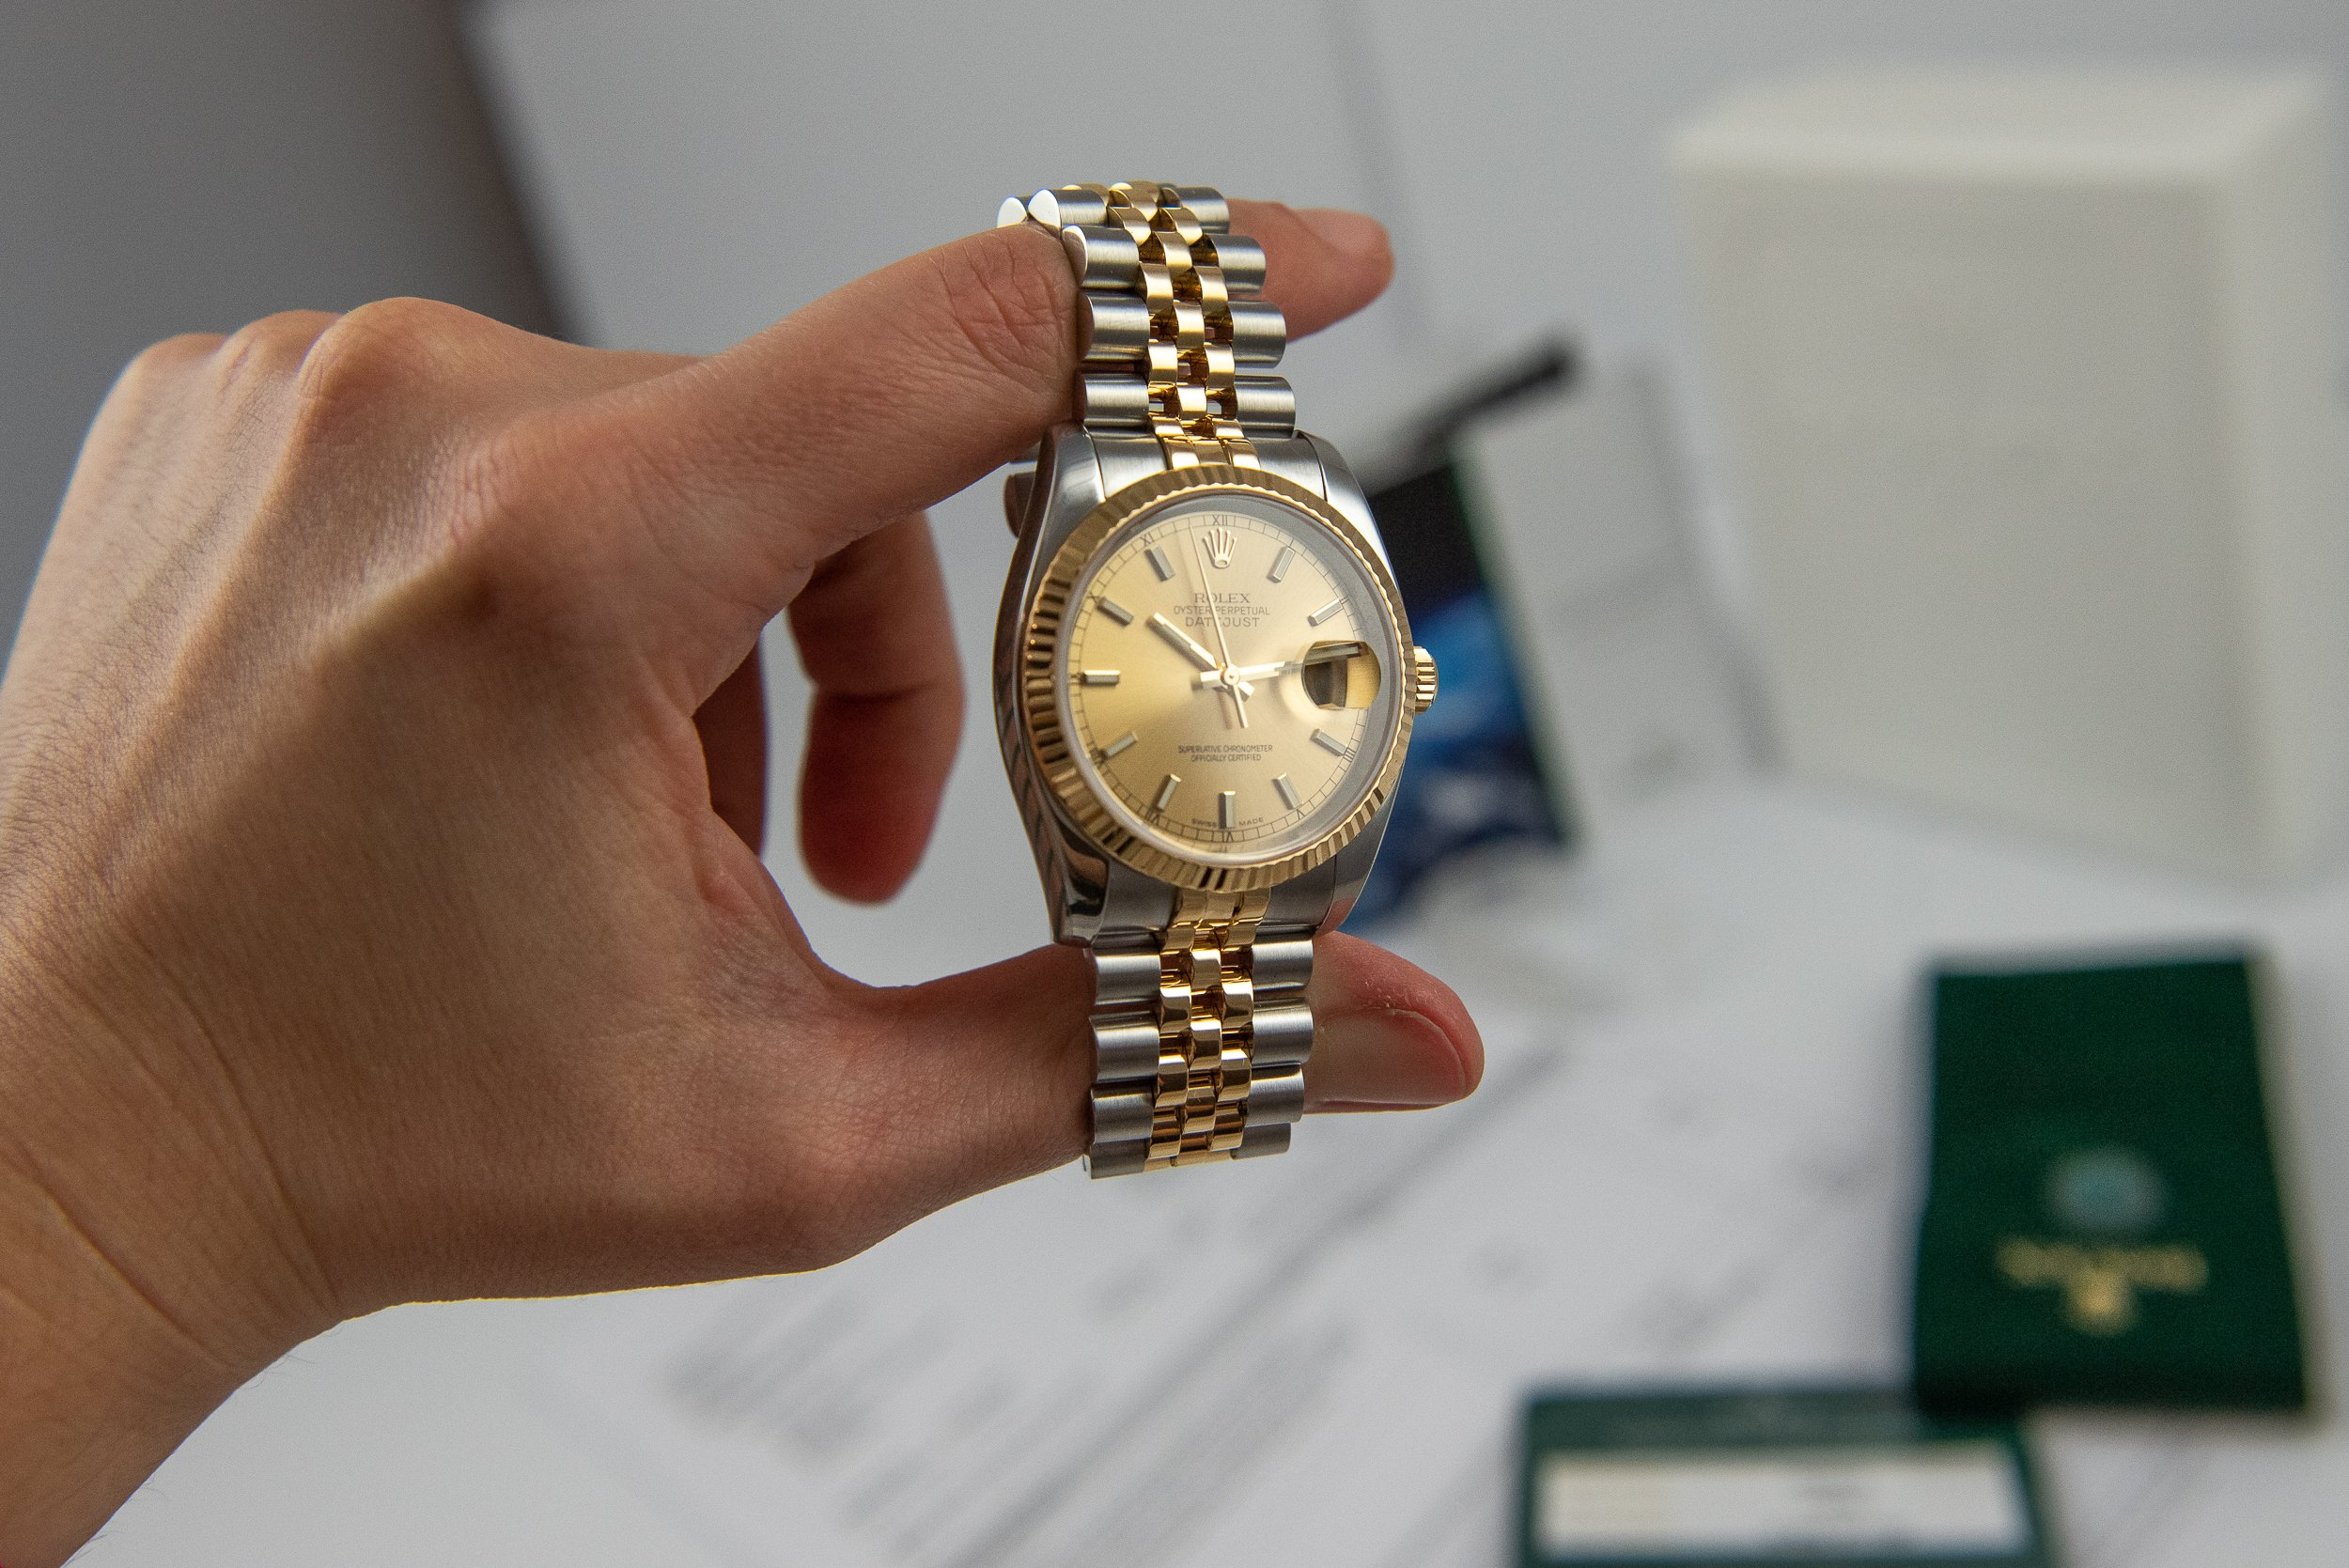 Rolex Watch Collecting Tips for Starters